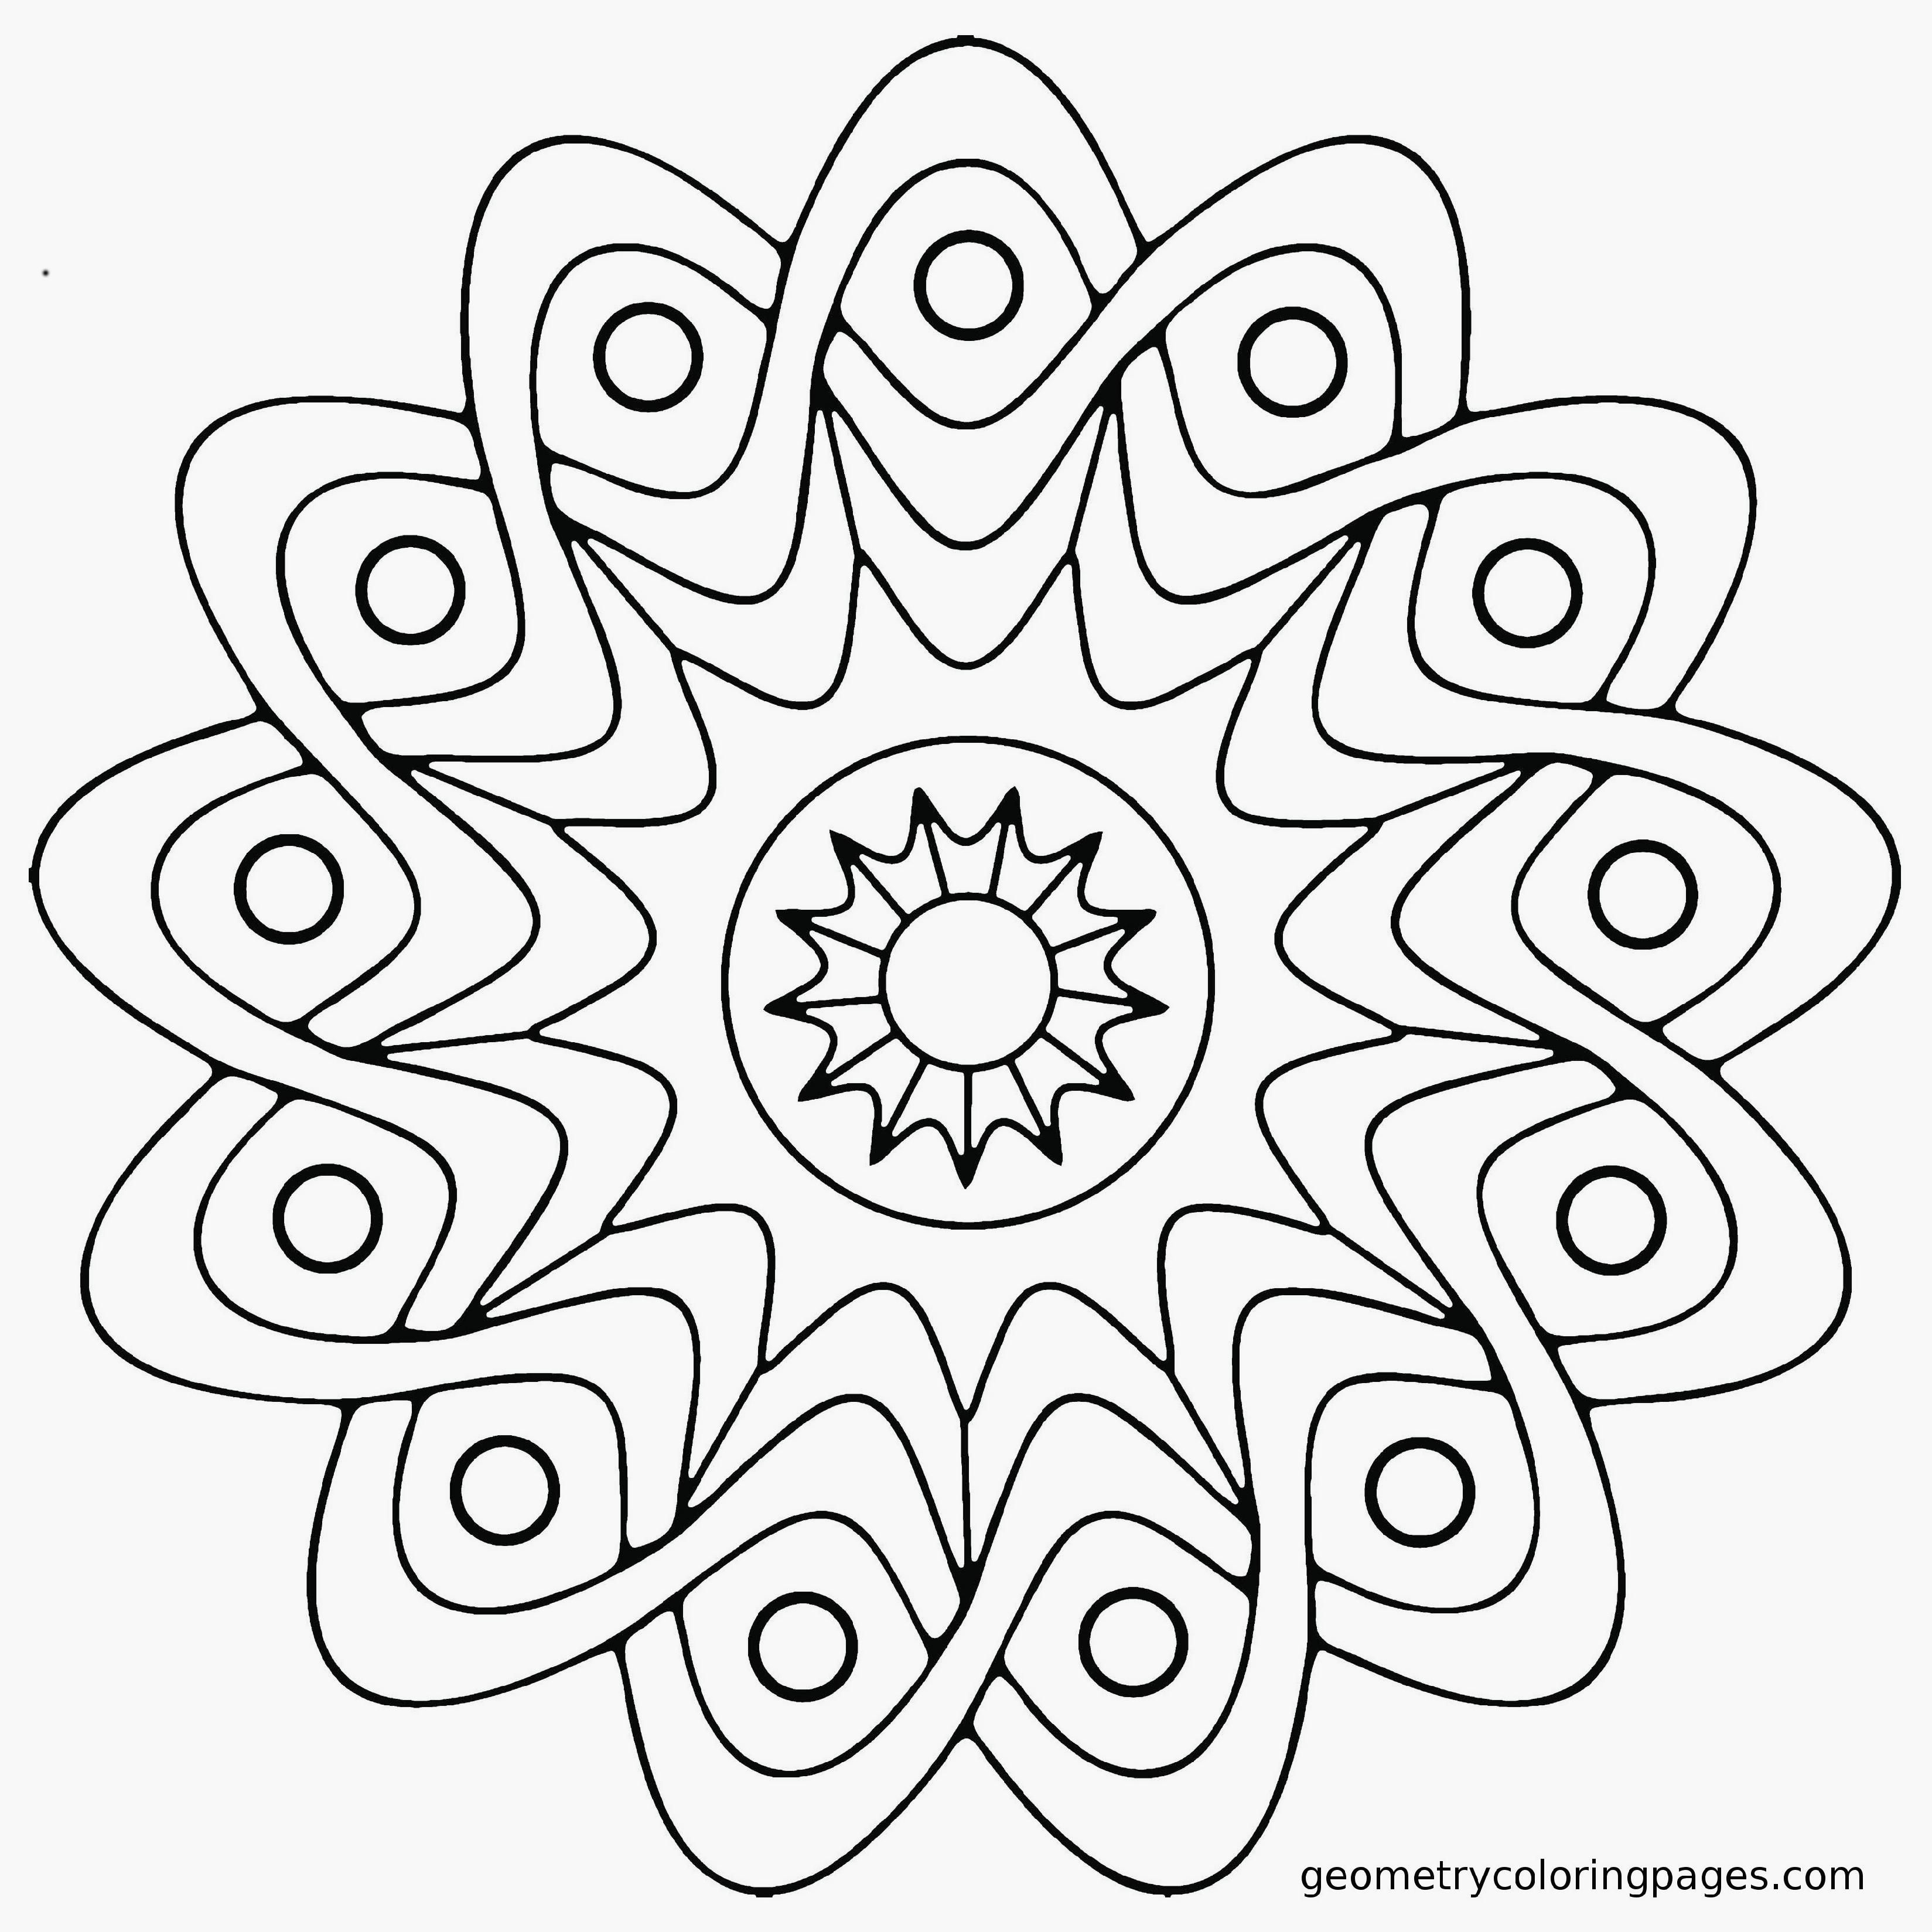 Flower Mandala Coloring Pages  Bing images  Embroidery